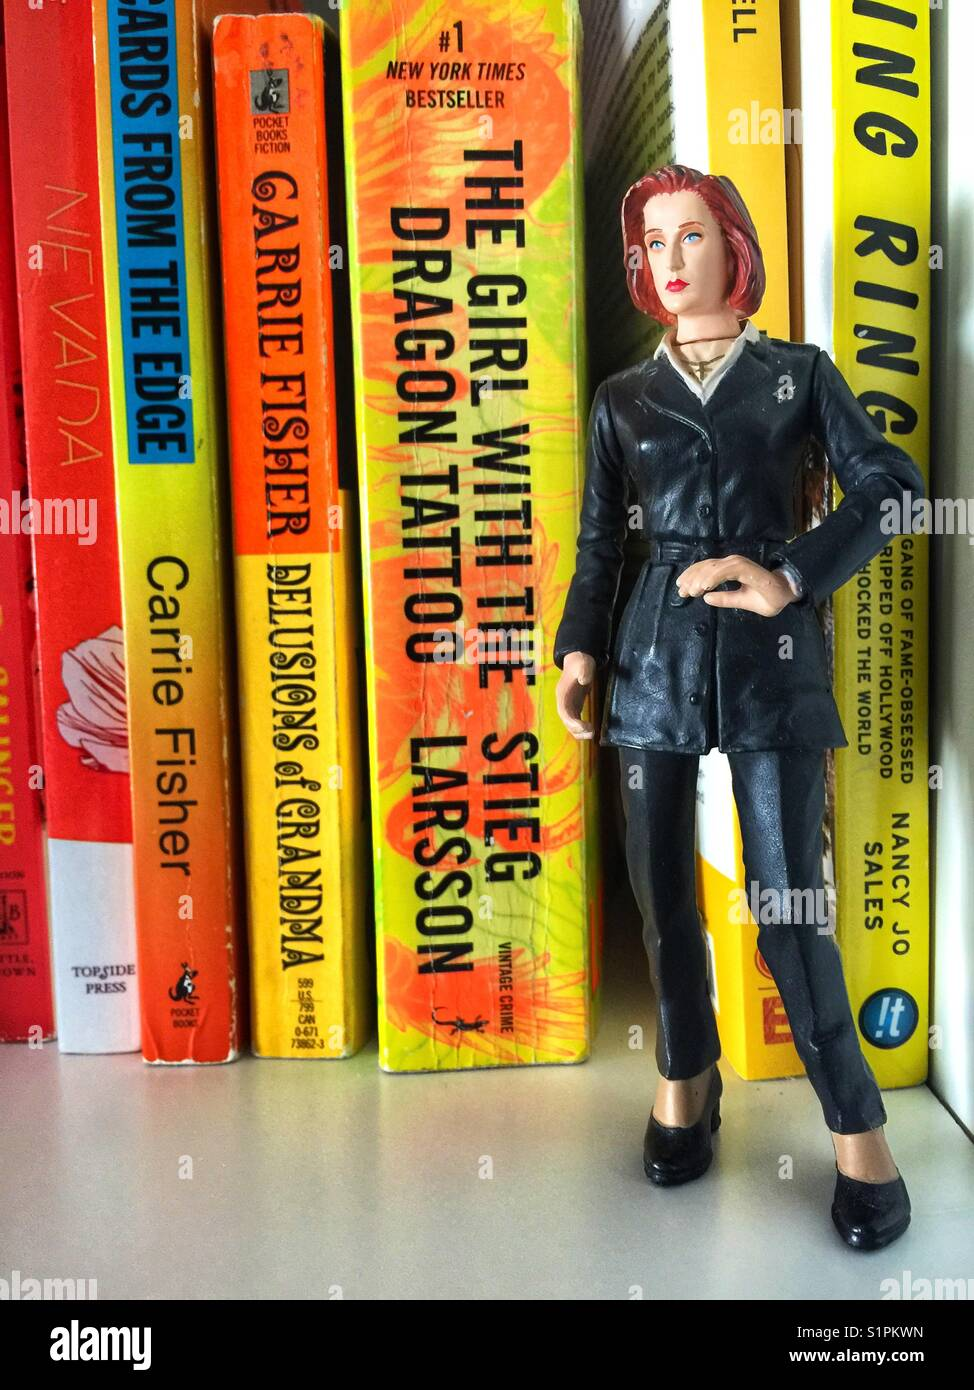 A toy figure of Dana Scully (Gillian Anderson) from the X Files standing near feminist themed books with orange - Stock Image